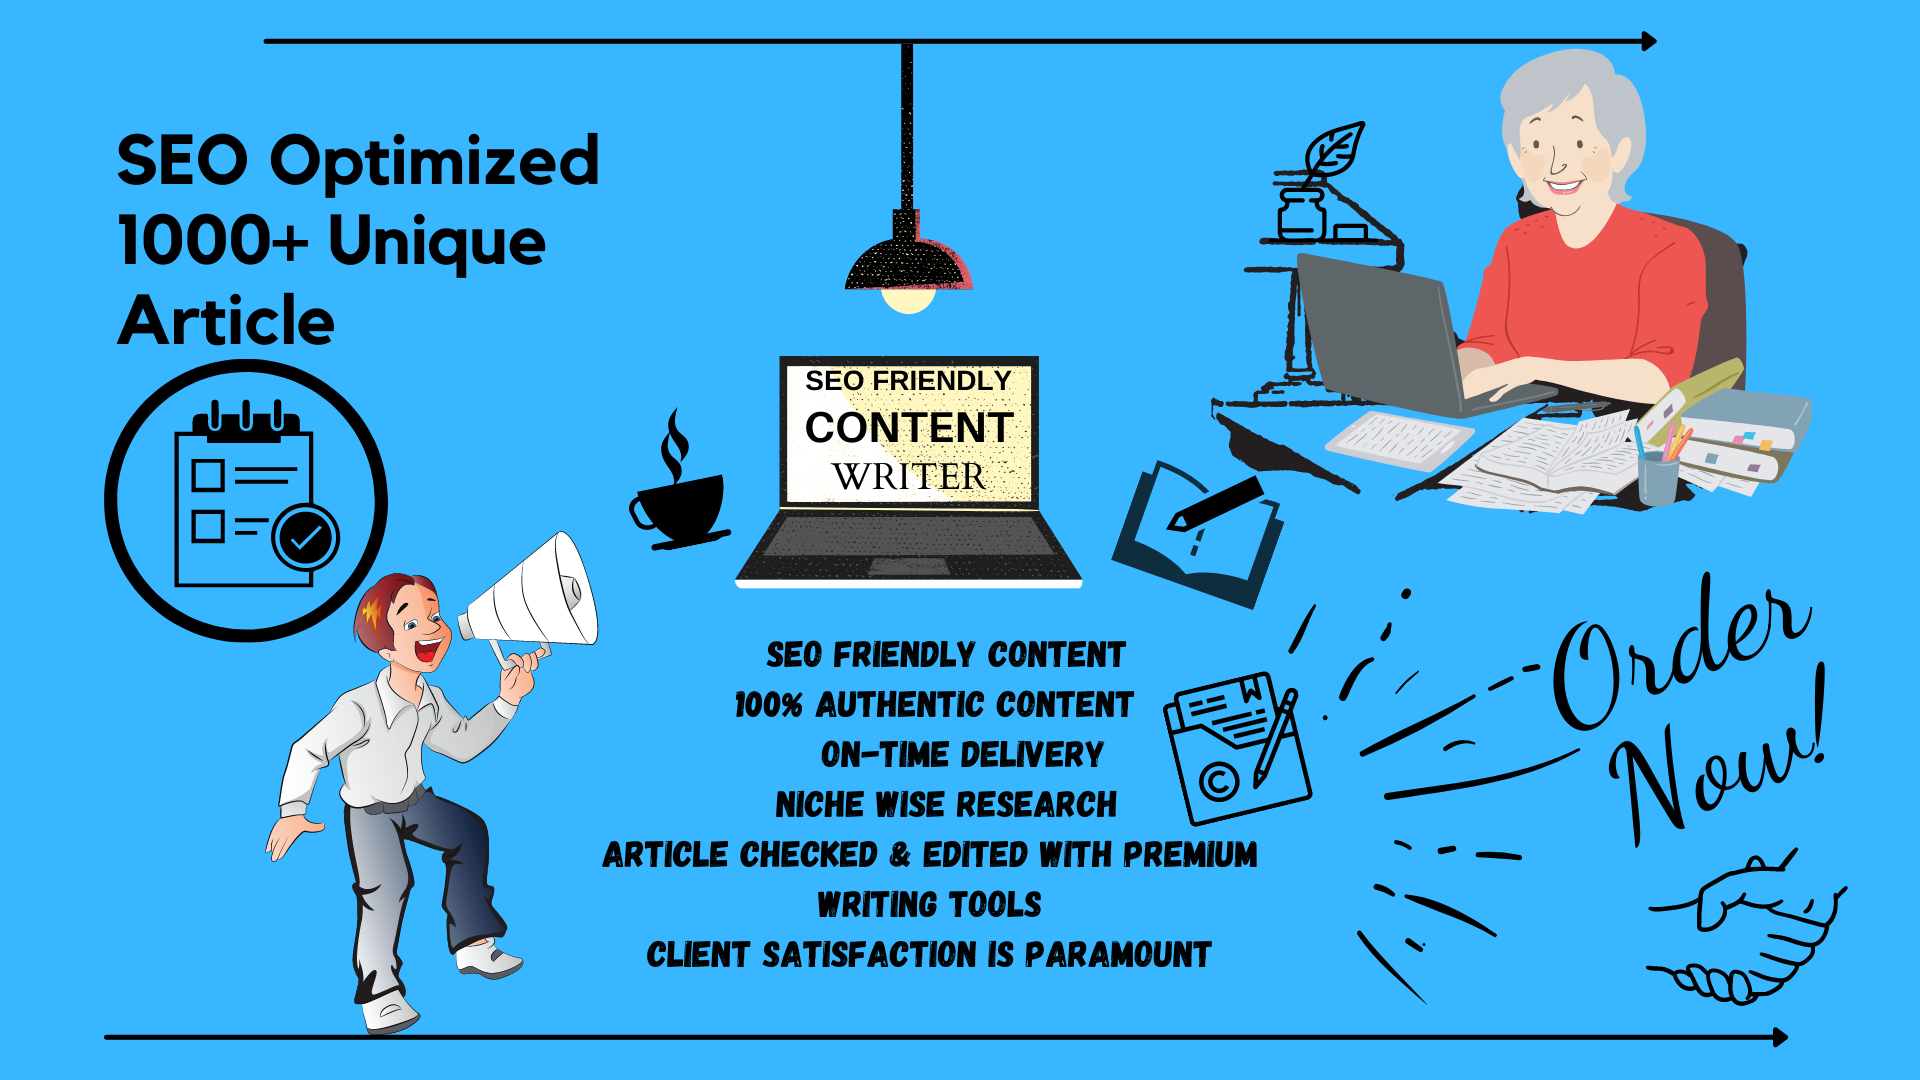 I Will Write 1000+ Words SEO Article For Your Blog Post